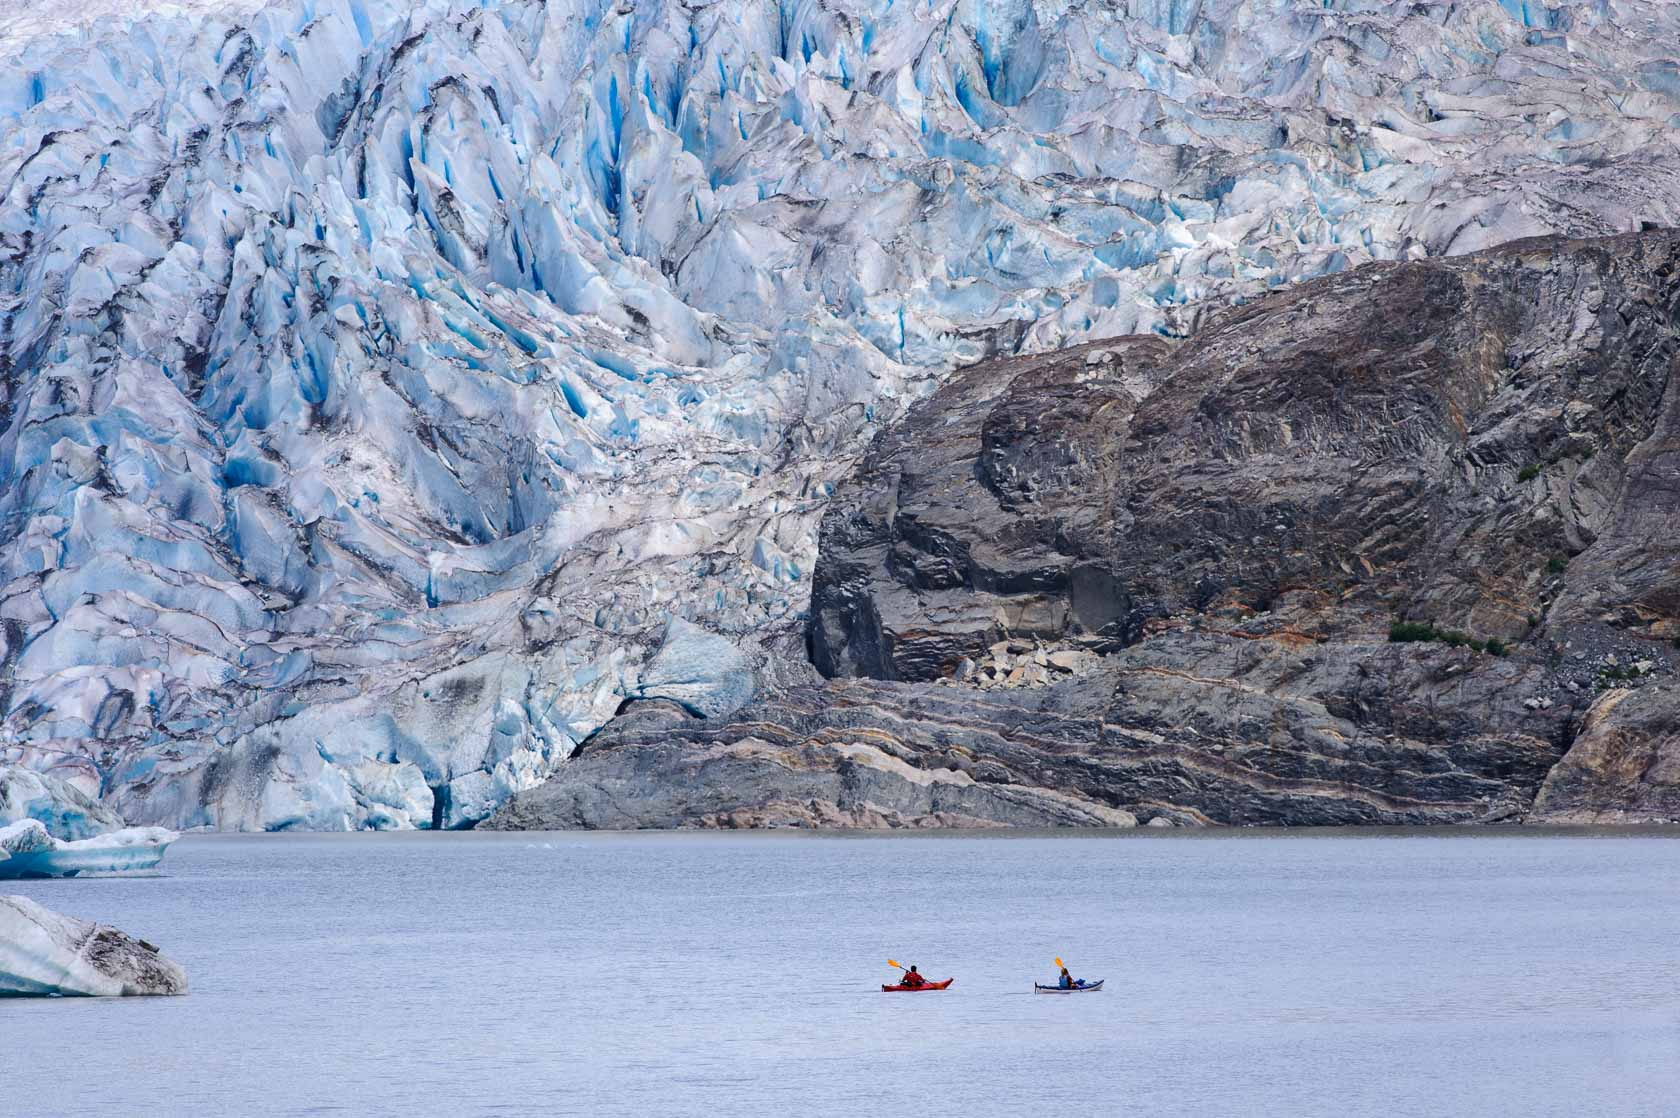 Kayakers near the Mendenhall Glacier, Juneau, Alaska